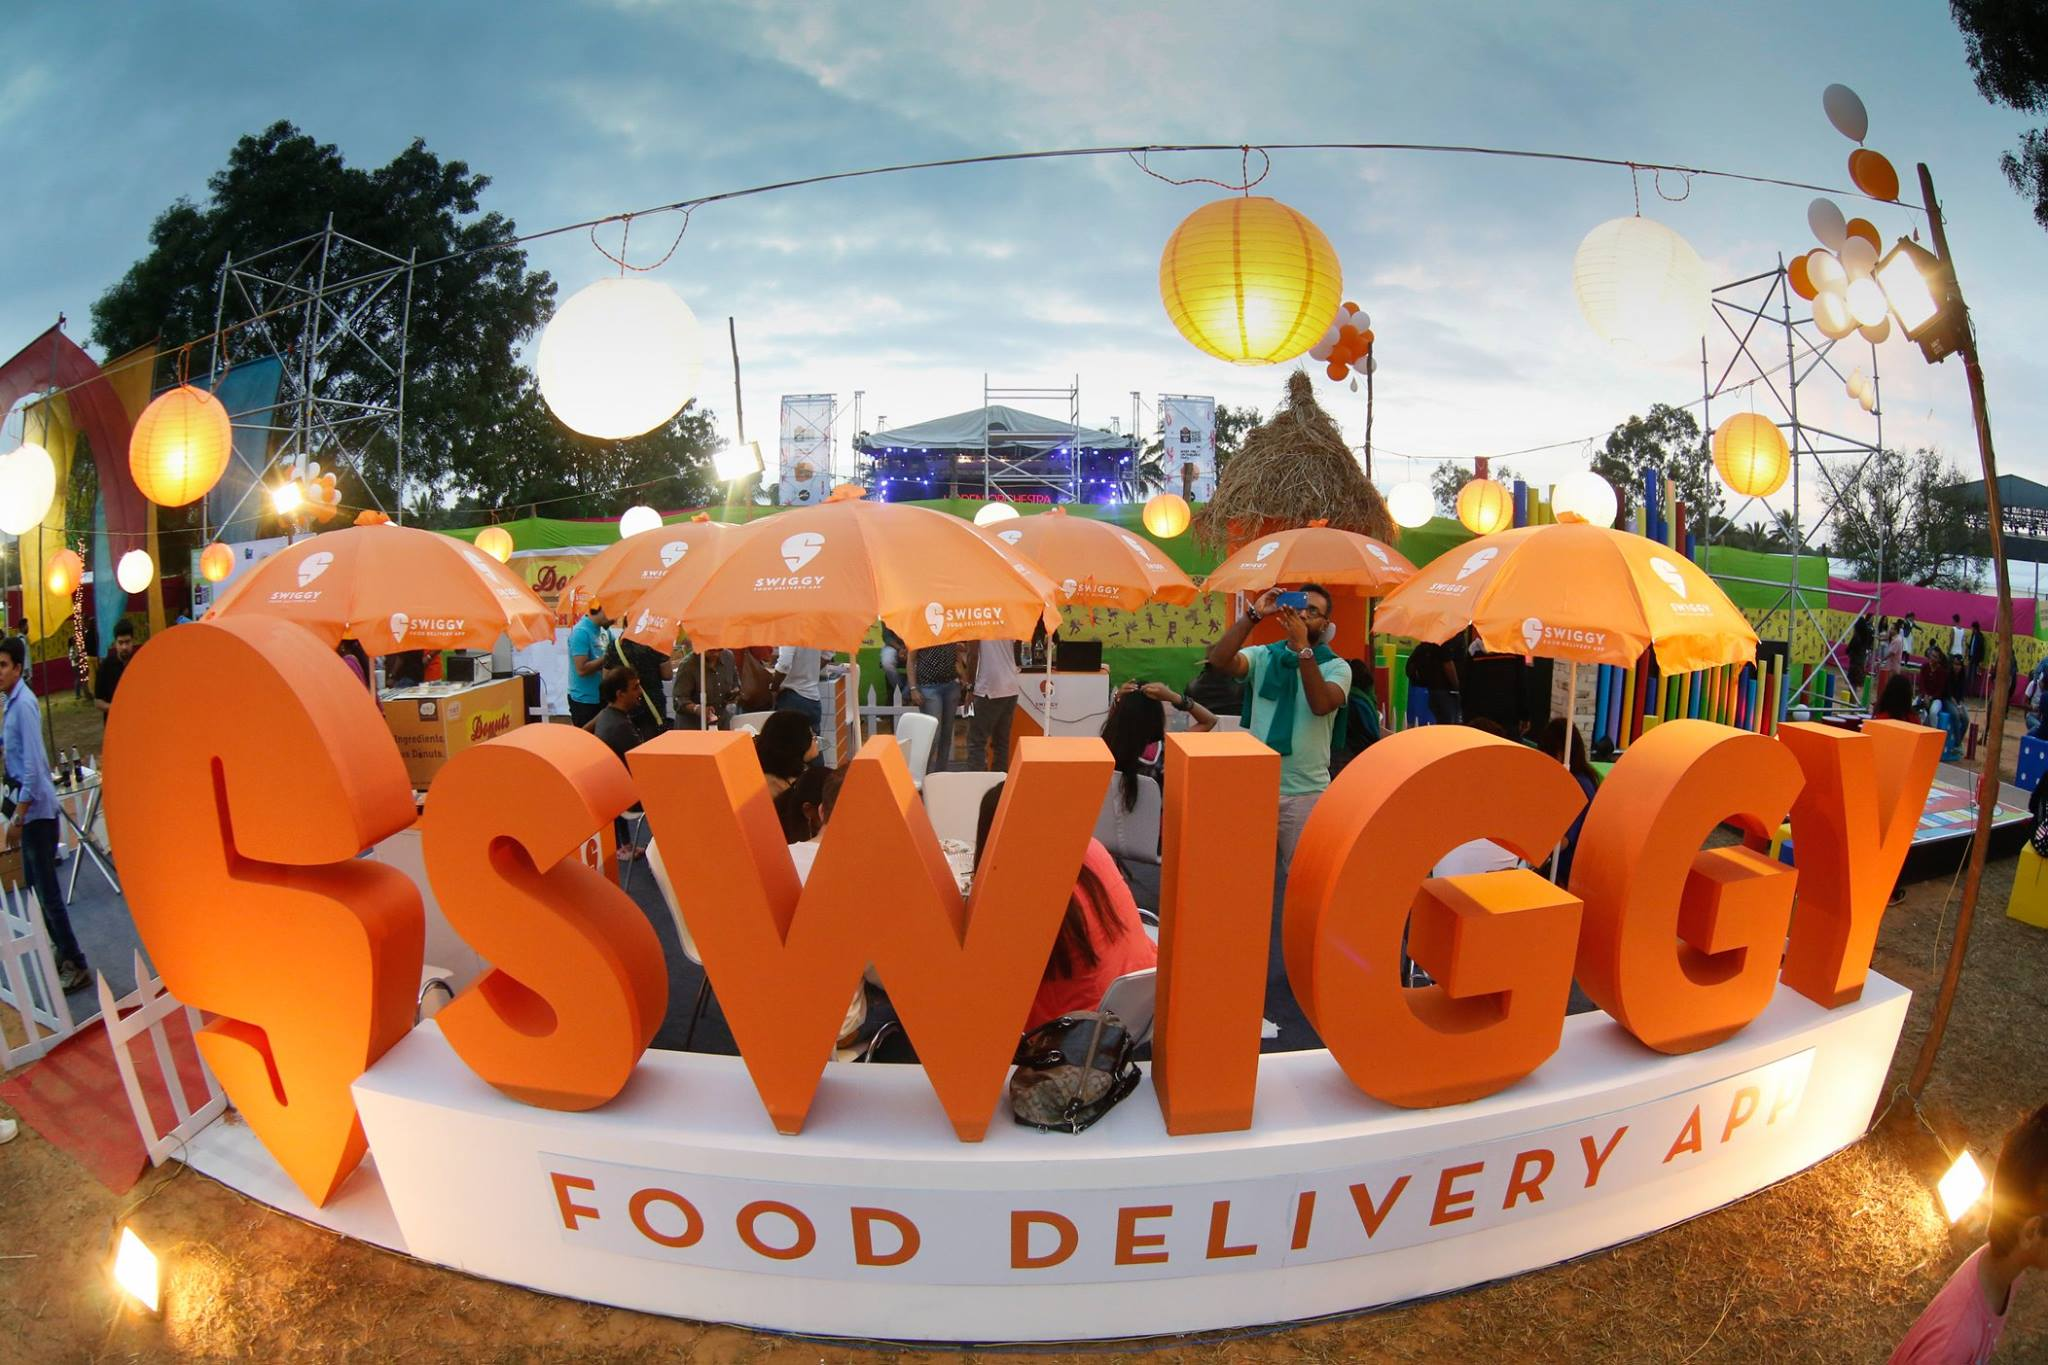 Swiggy scoops up $113m from Prosus, Meituan, others